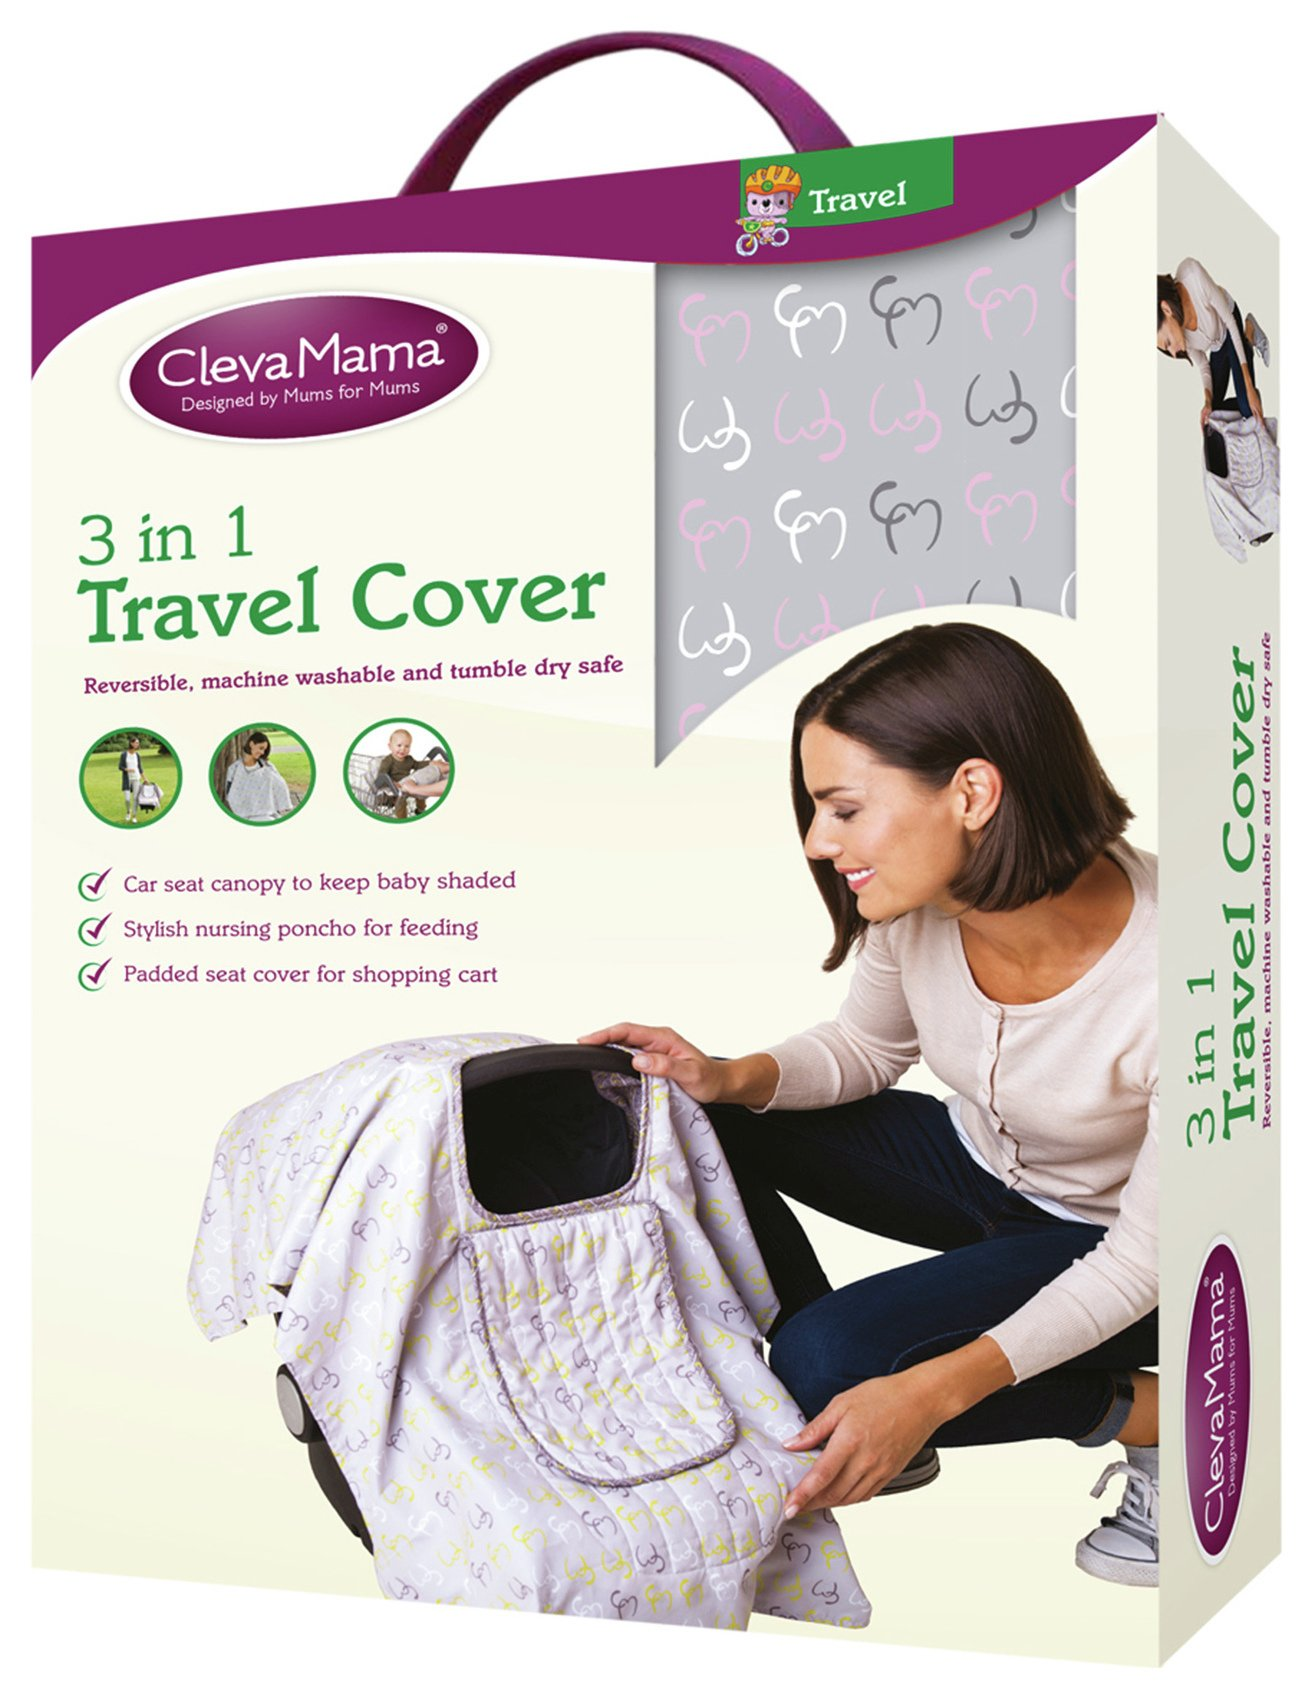 Clevamama 3 in 1 Travel Cover - Rose